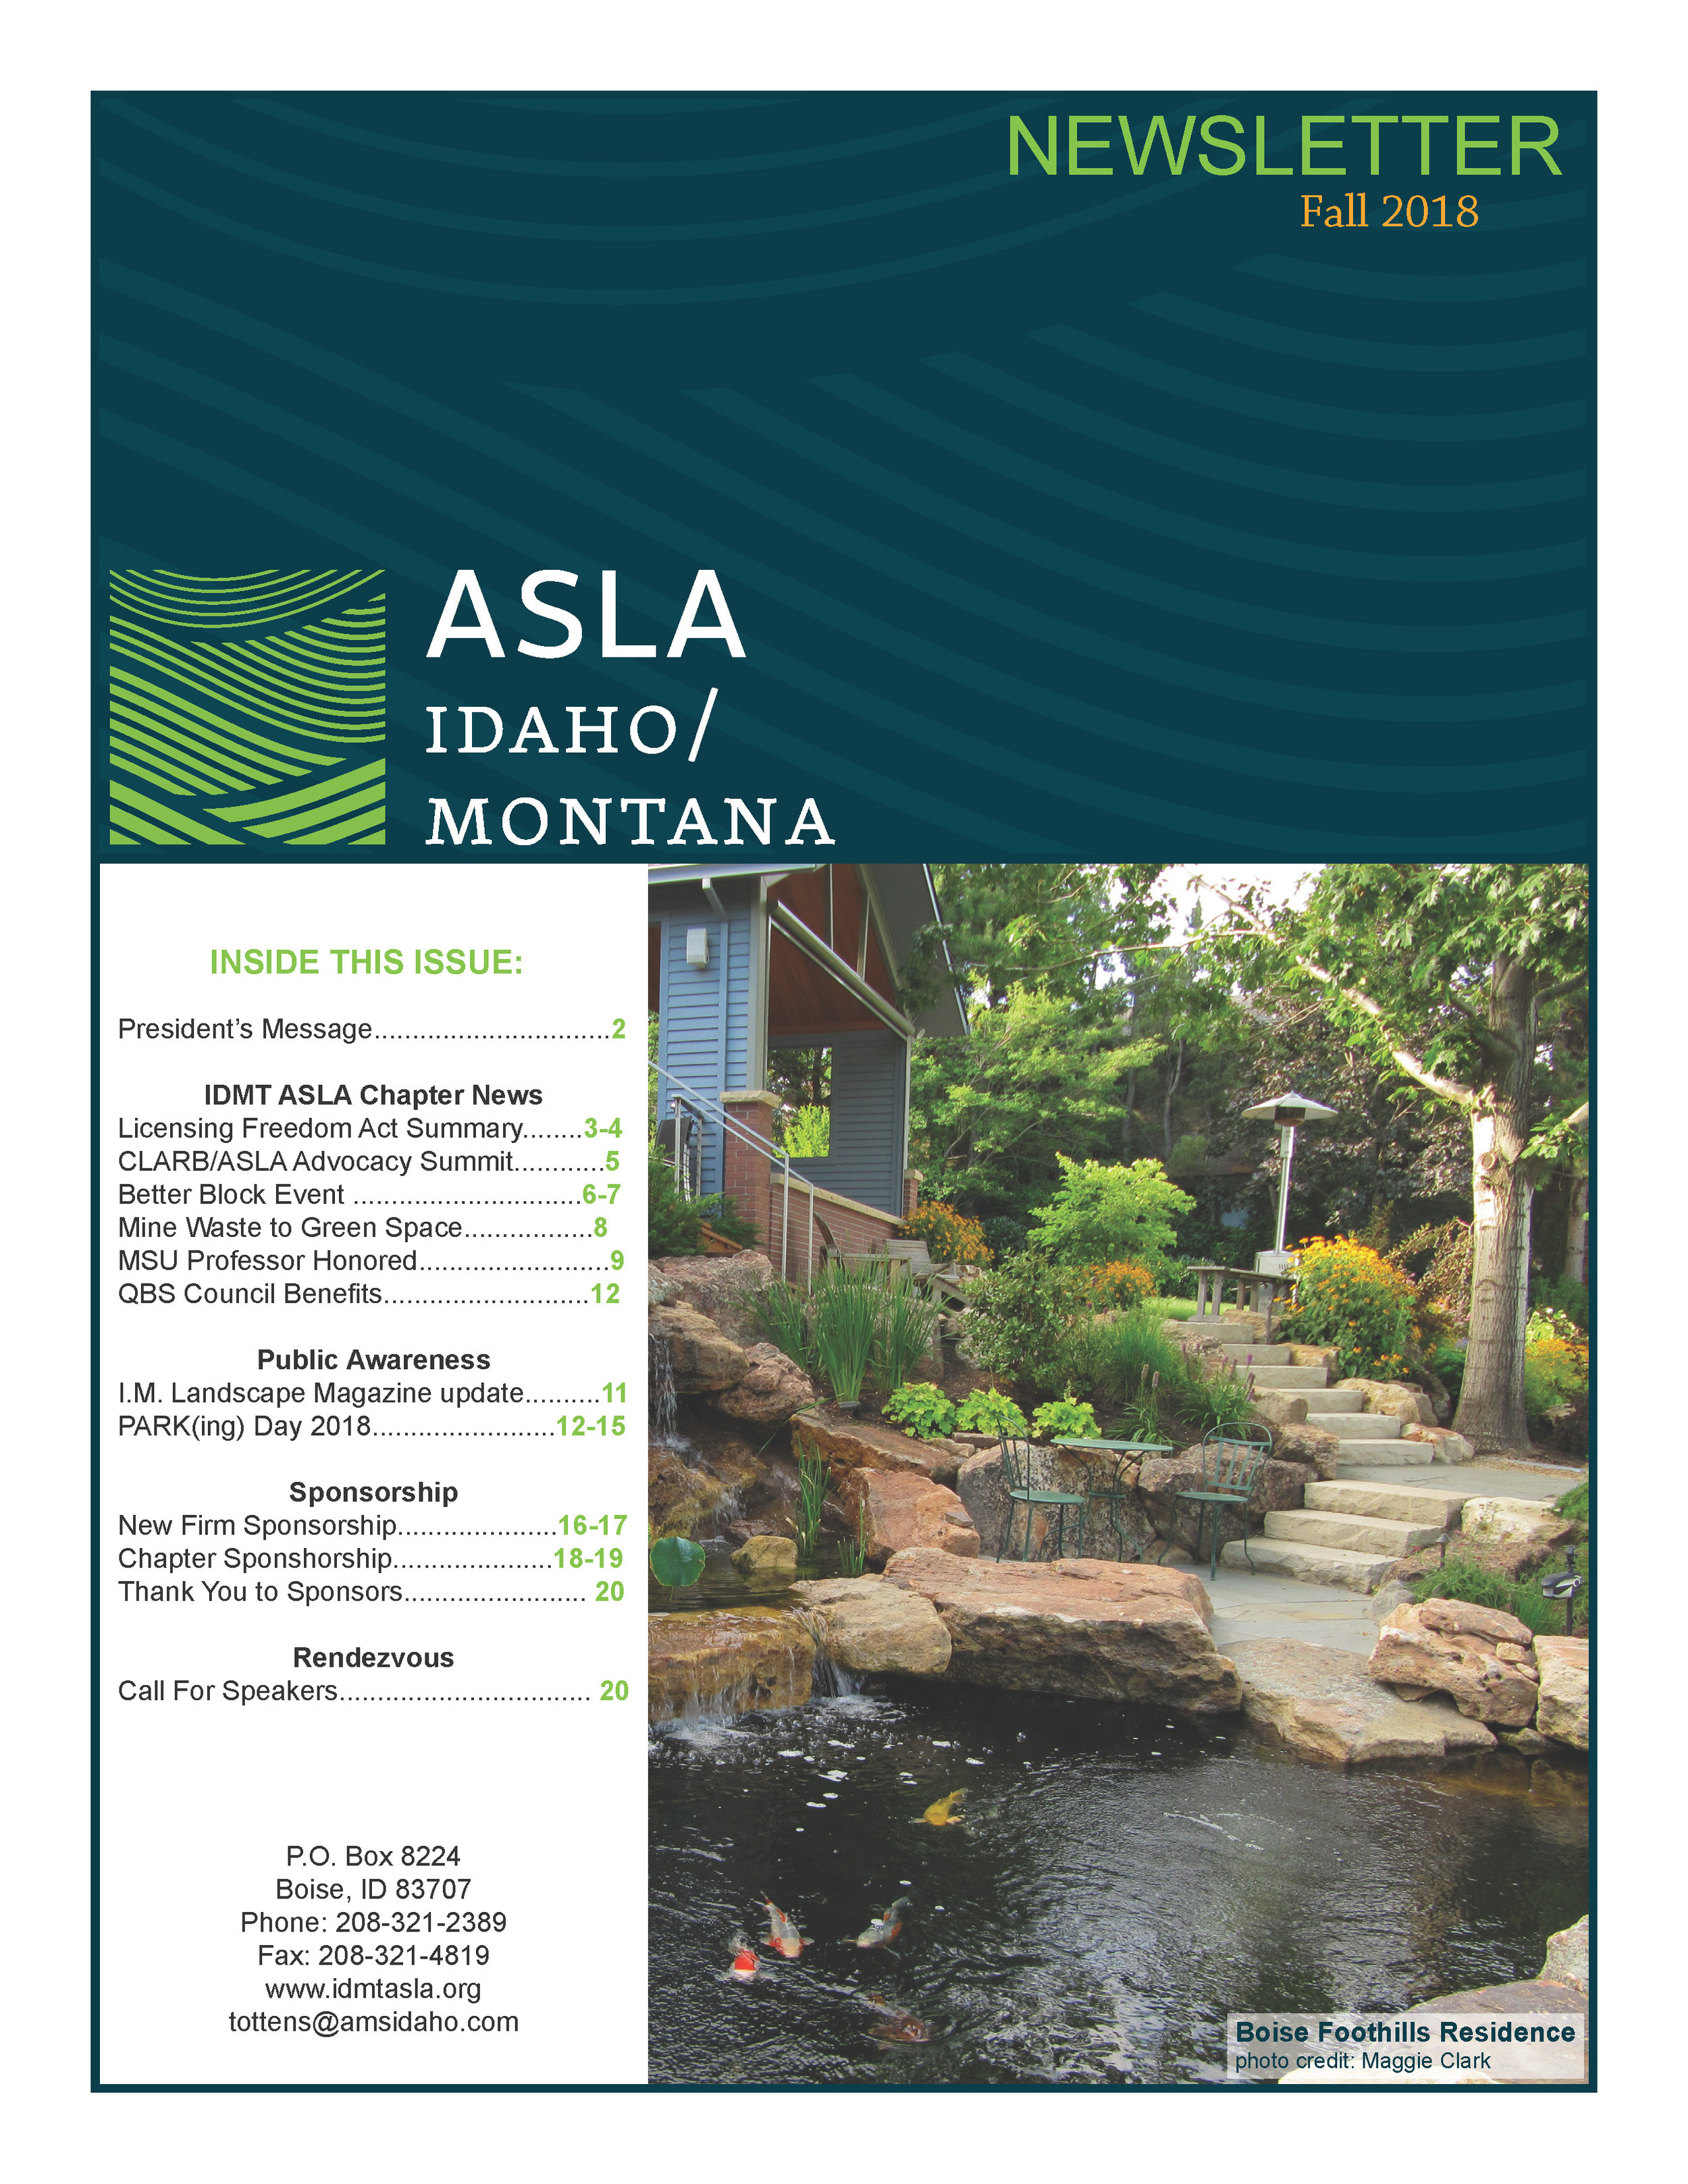 IDMT ASLA Newsletter